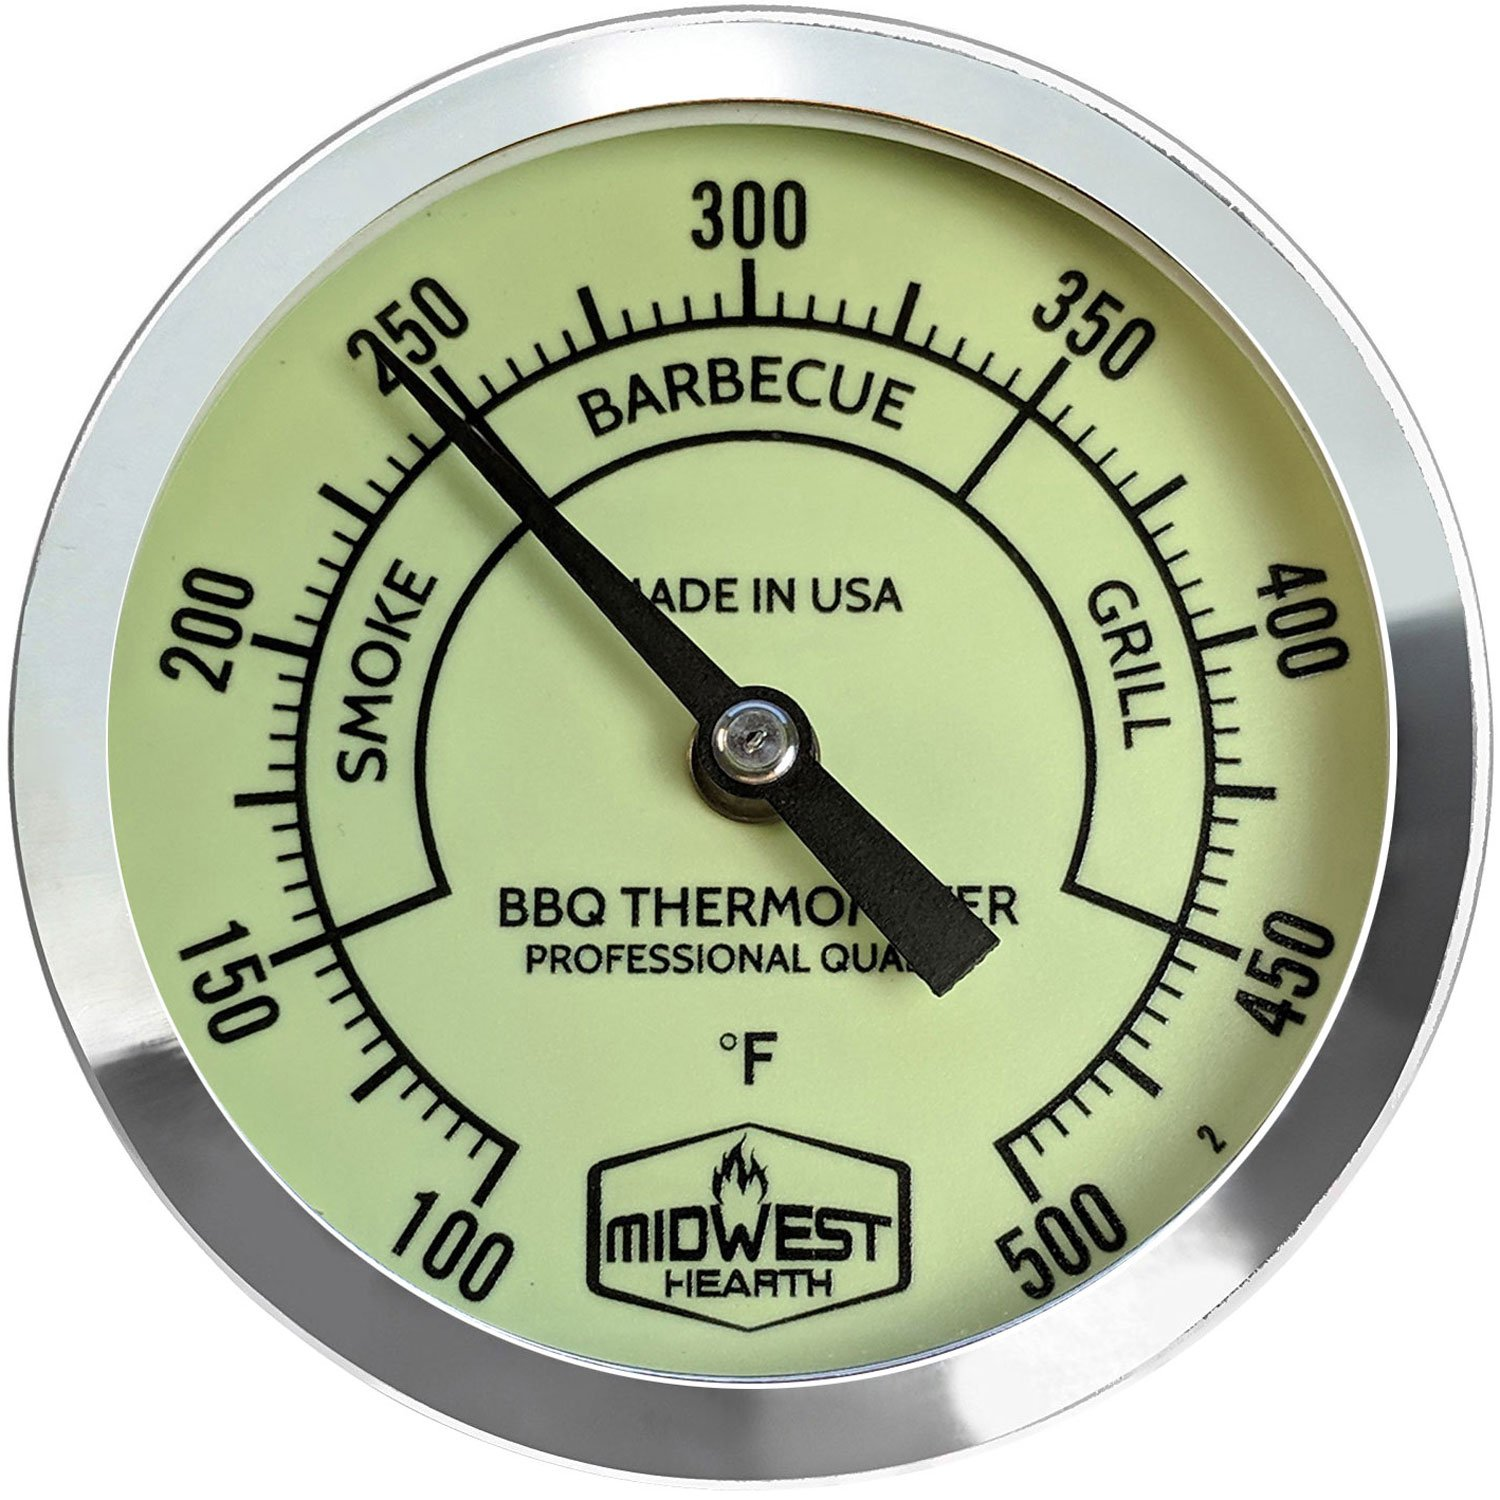 Midwest Hearth BBQ Smoker Thermometer for Barbecue Grill, Pit, Barrel 3'' Dial (4'' Stem Length, Glow Dial) by Midwest Hearth